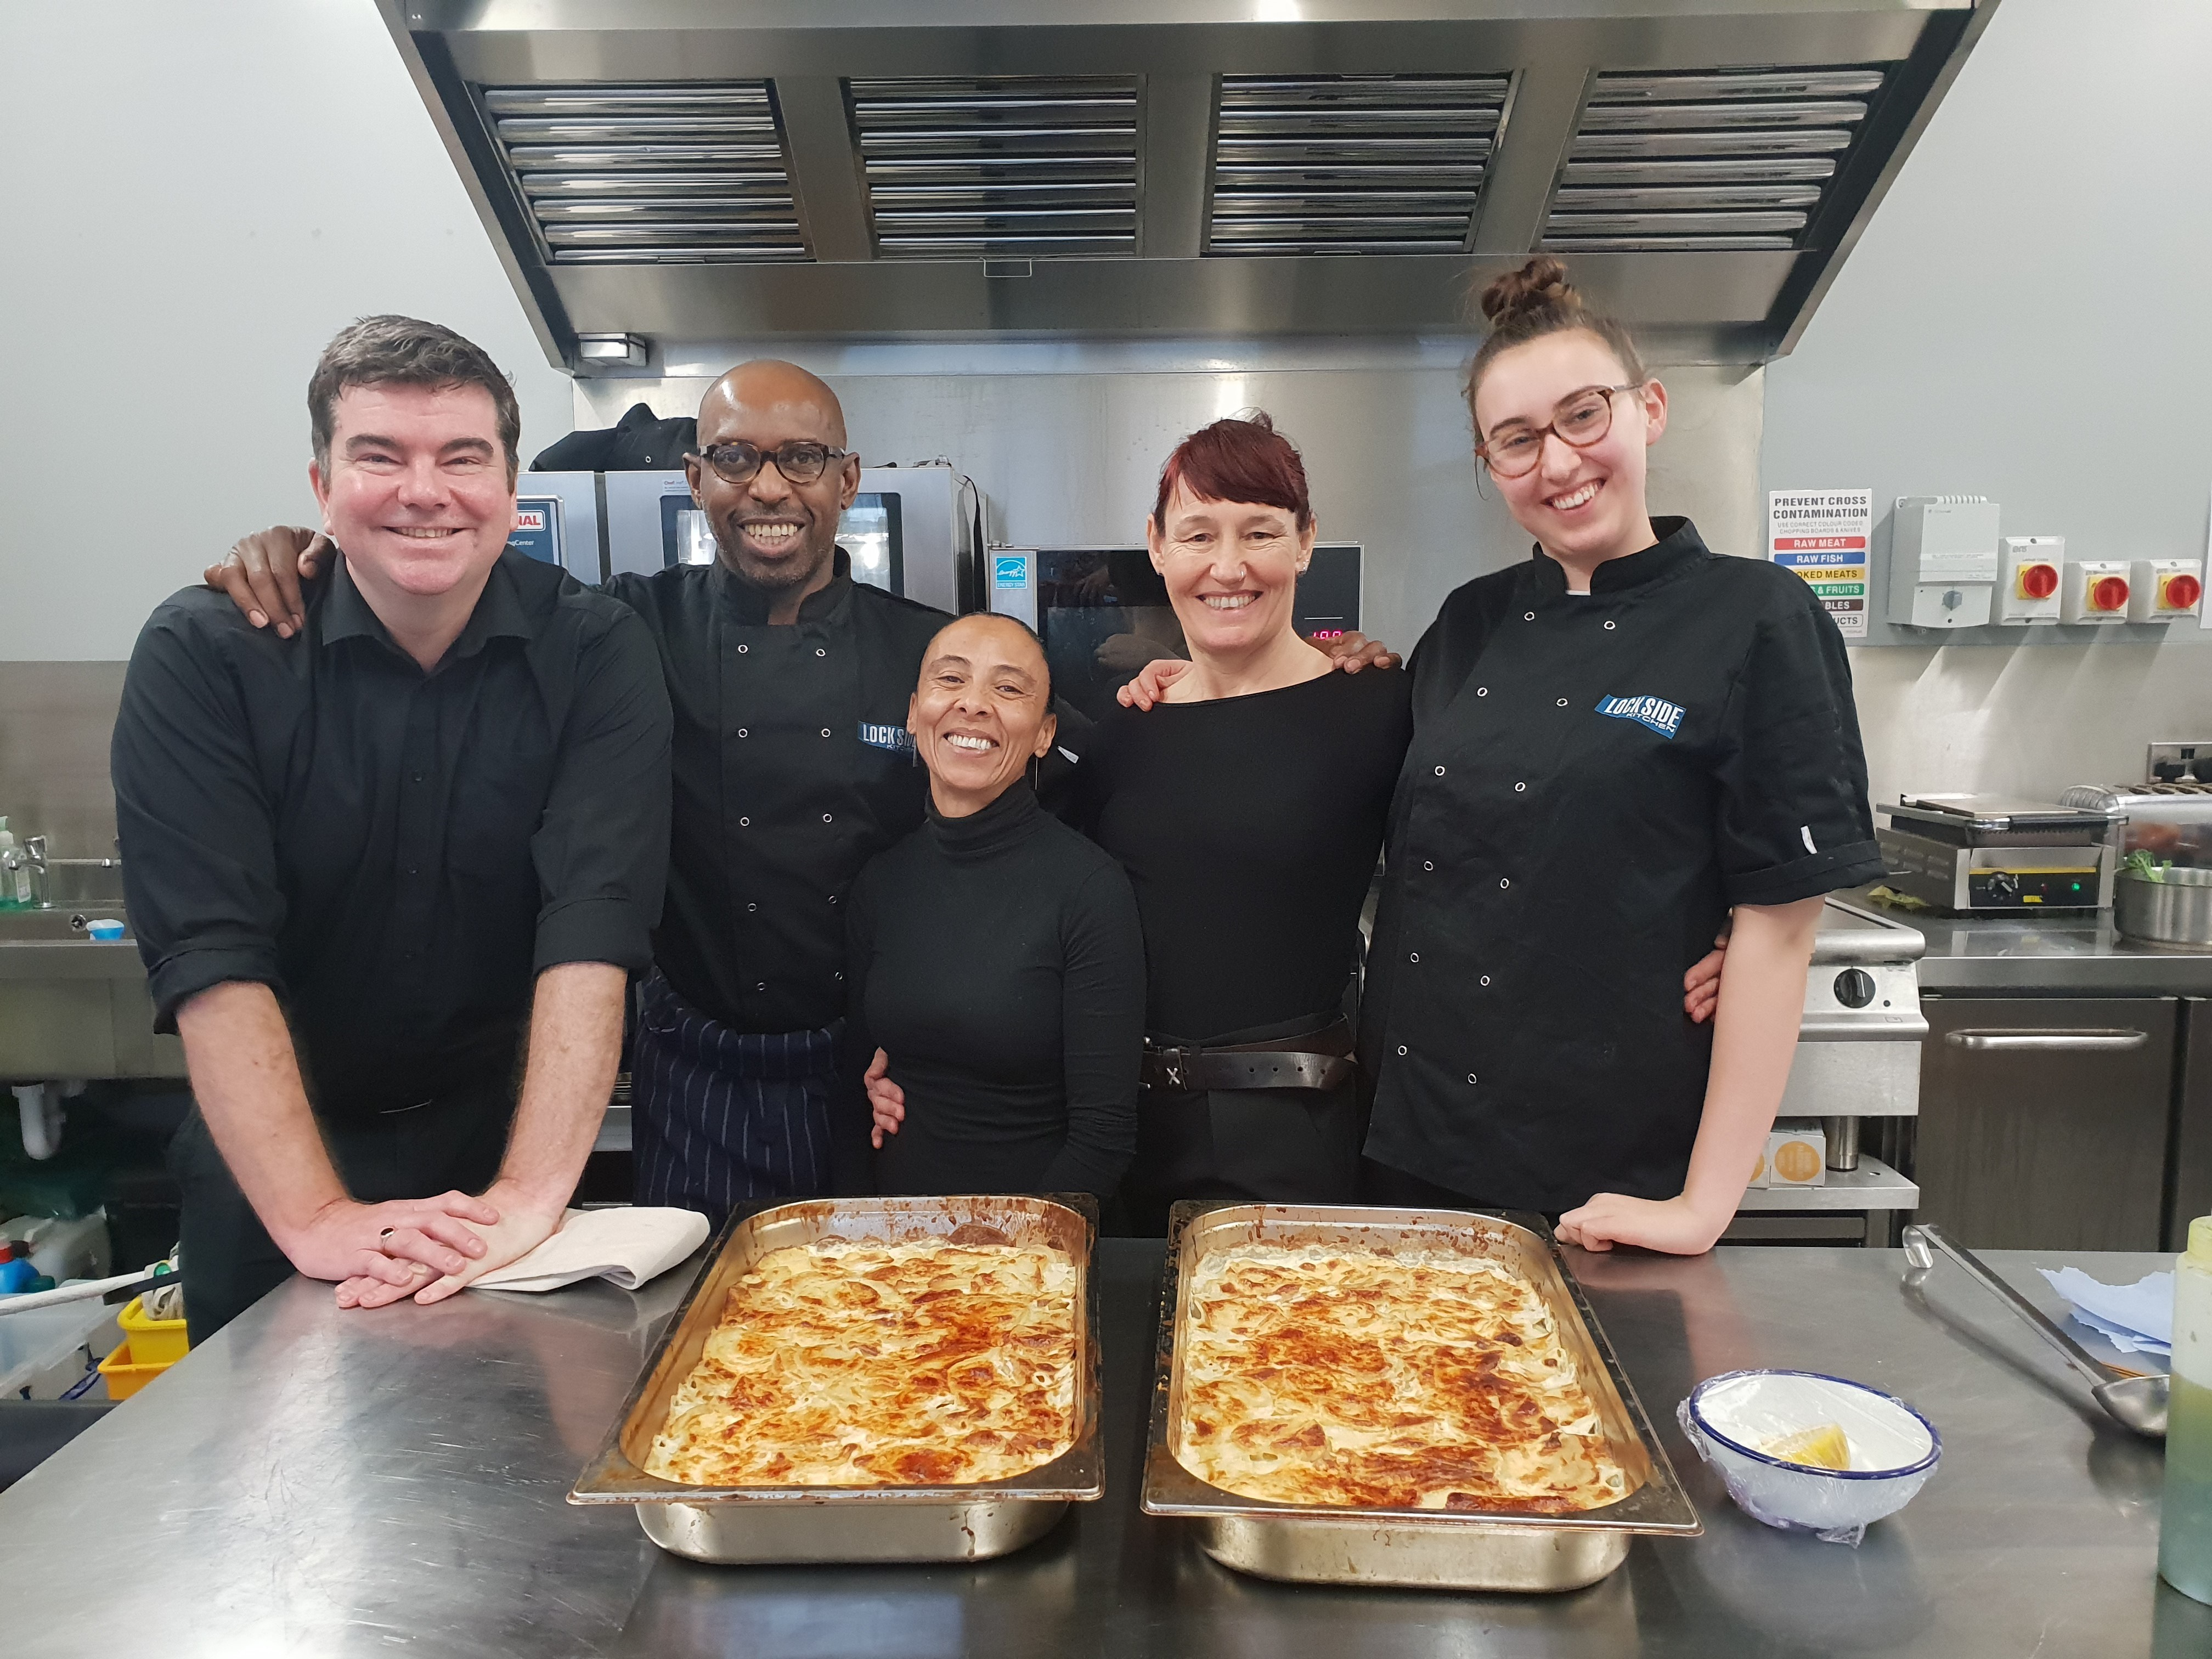 A photo of the Lockside Kitchen team